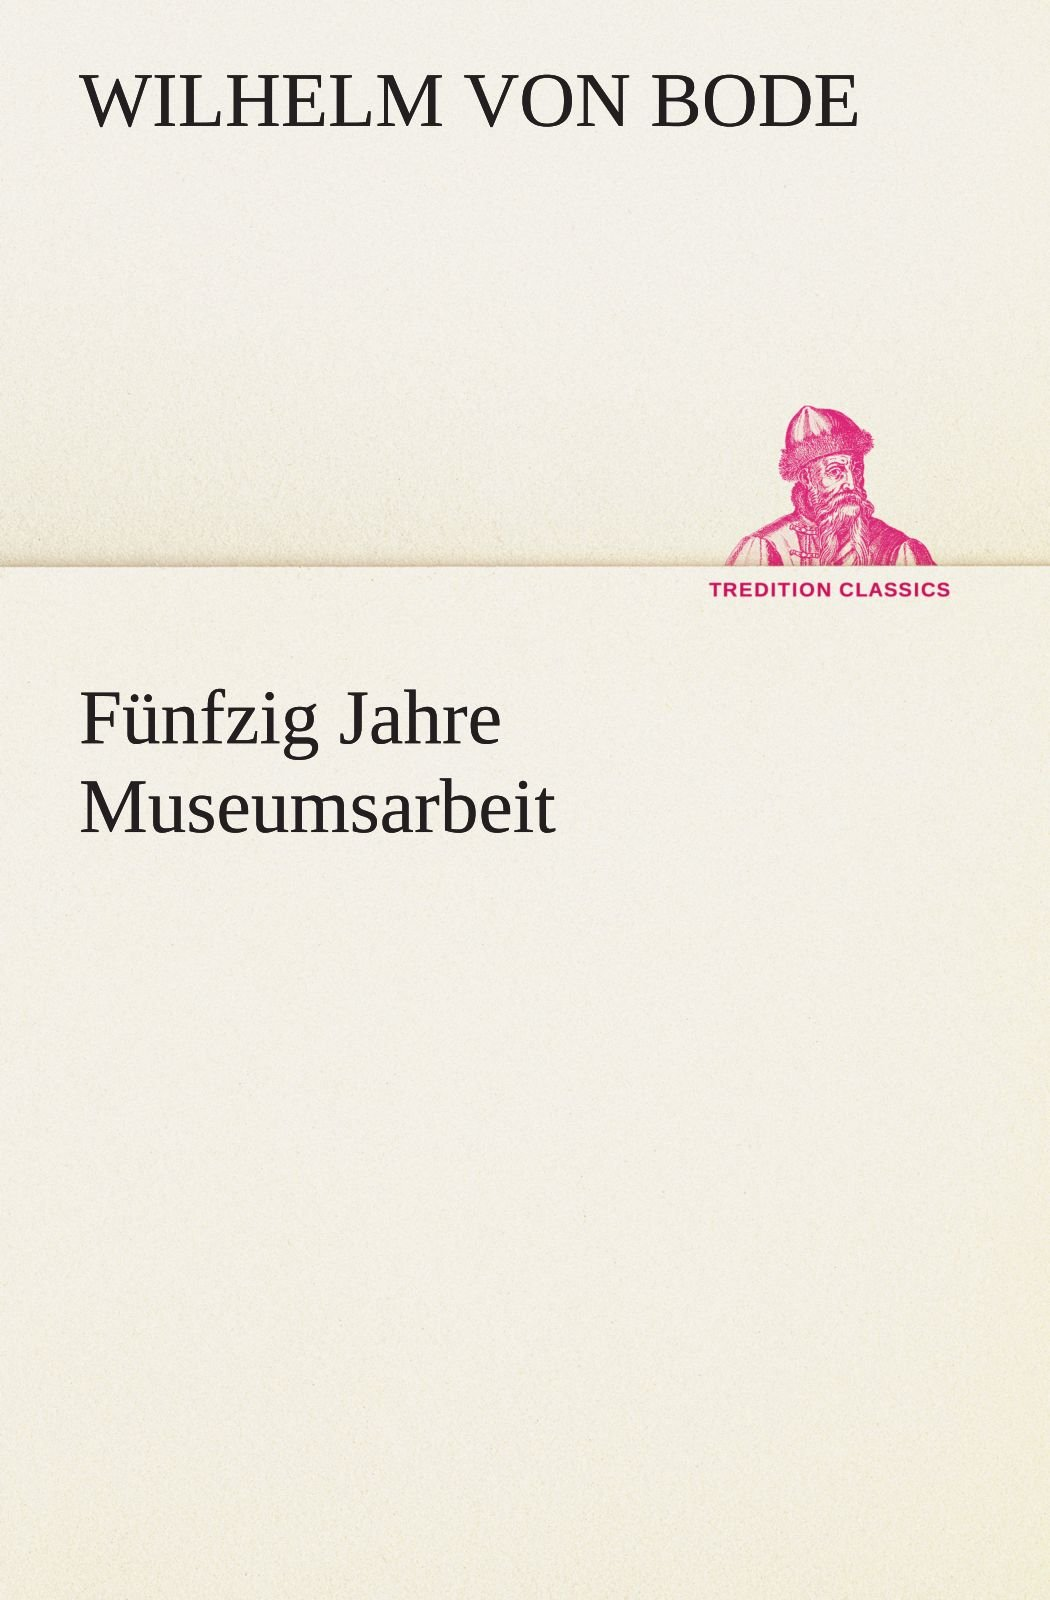 Download Fünfzig Jahre Museumsarbeit (TREDITION CLASSICS) (German Edition) ebook